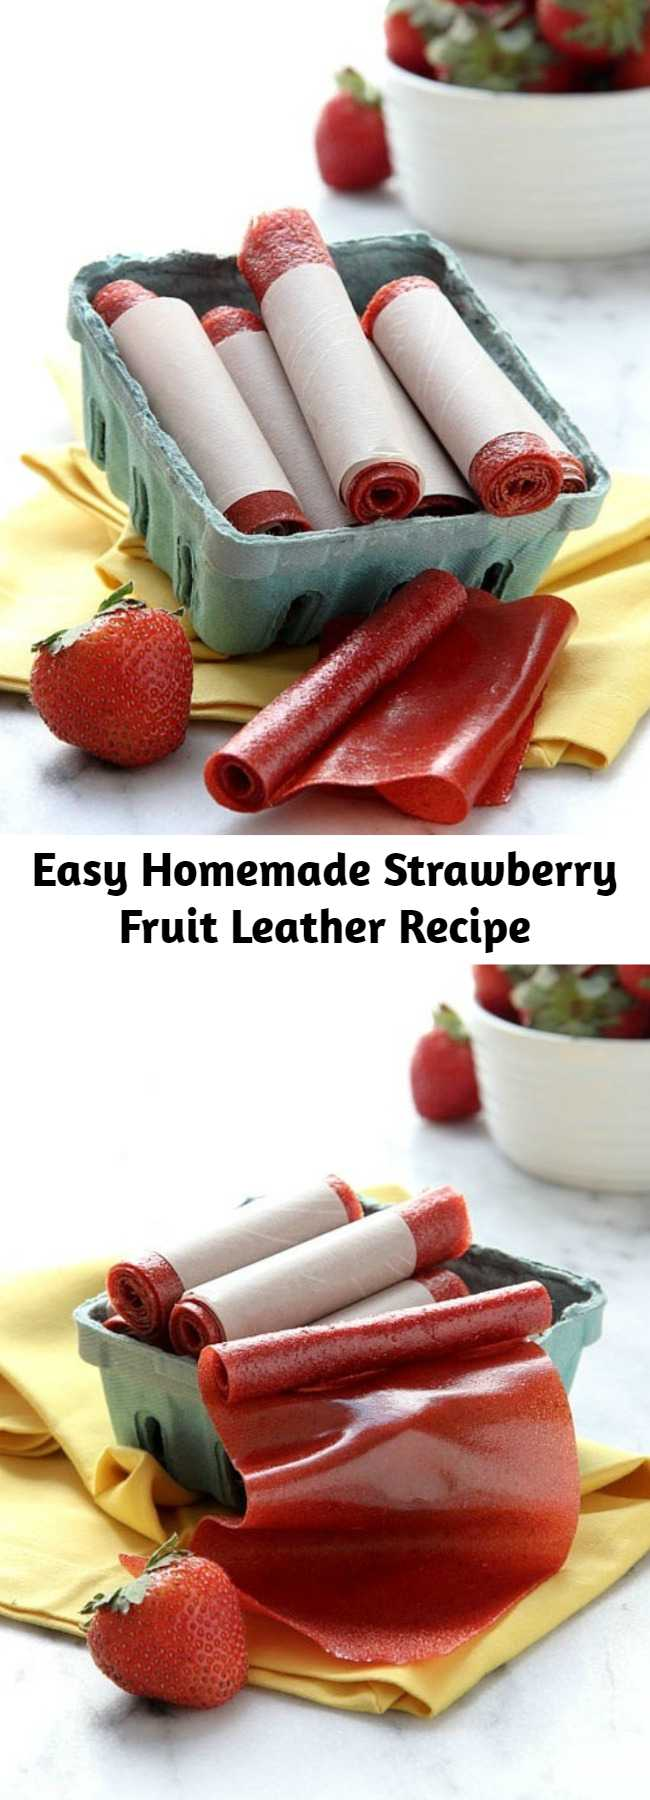 Easy Homemade Strawberry Fruit Leather Recipe - Easy homemade strawberry fruit leather, requiring only a few simple ingredients and an oven! Tastes just like your favorite fruit roll-up, only better.